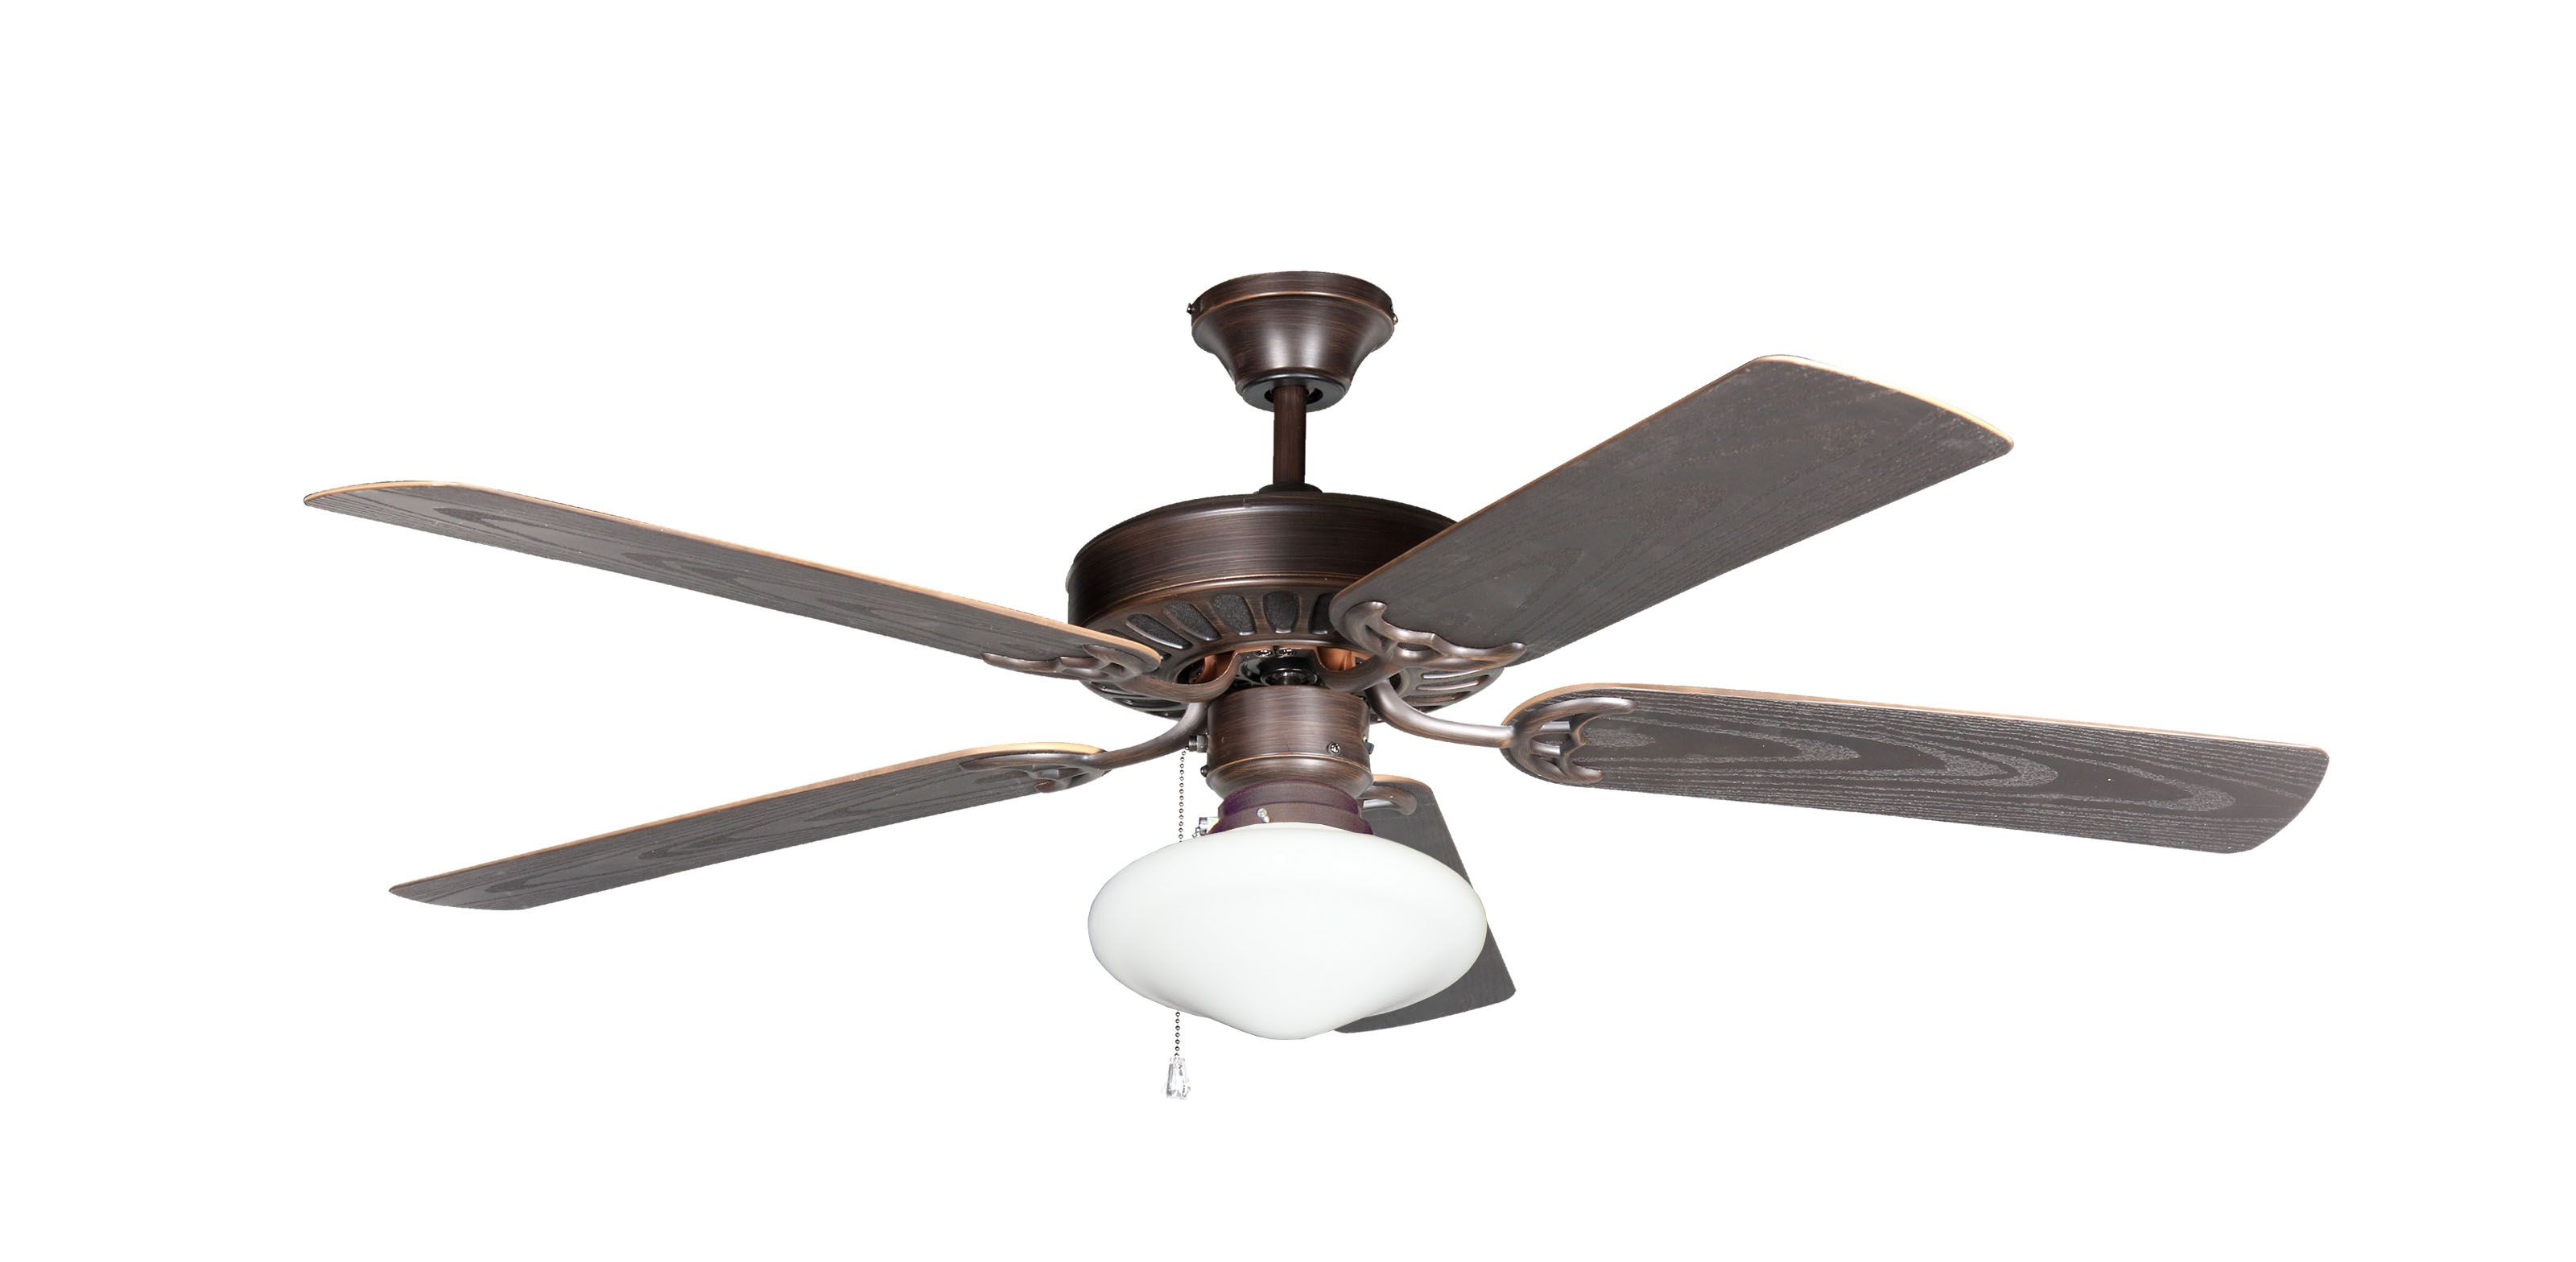 TroposAir ProSeries Builder 52 in. Outdoor Ceiling Fan in